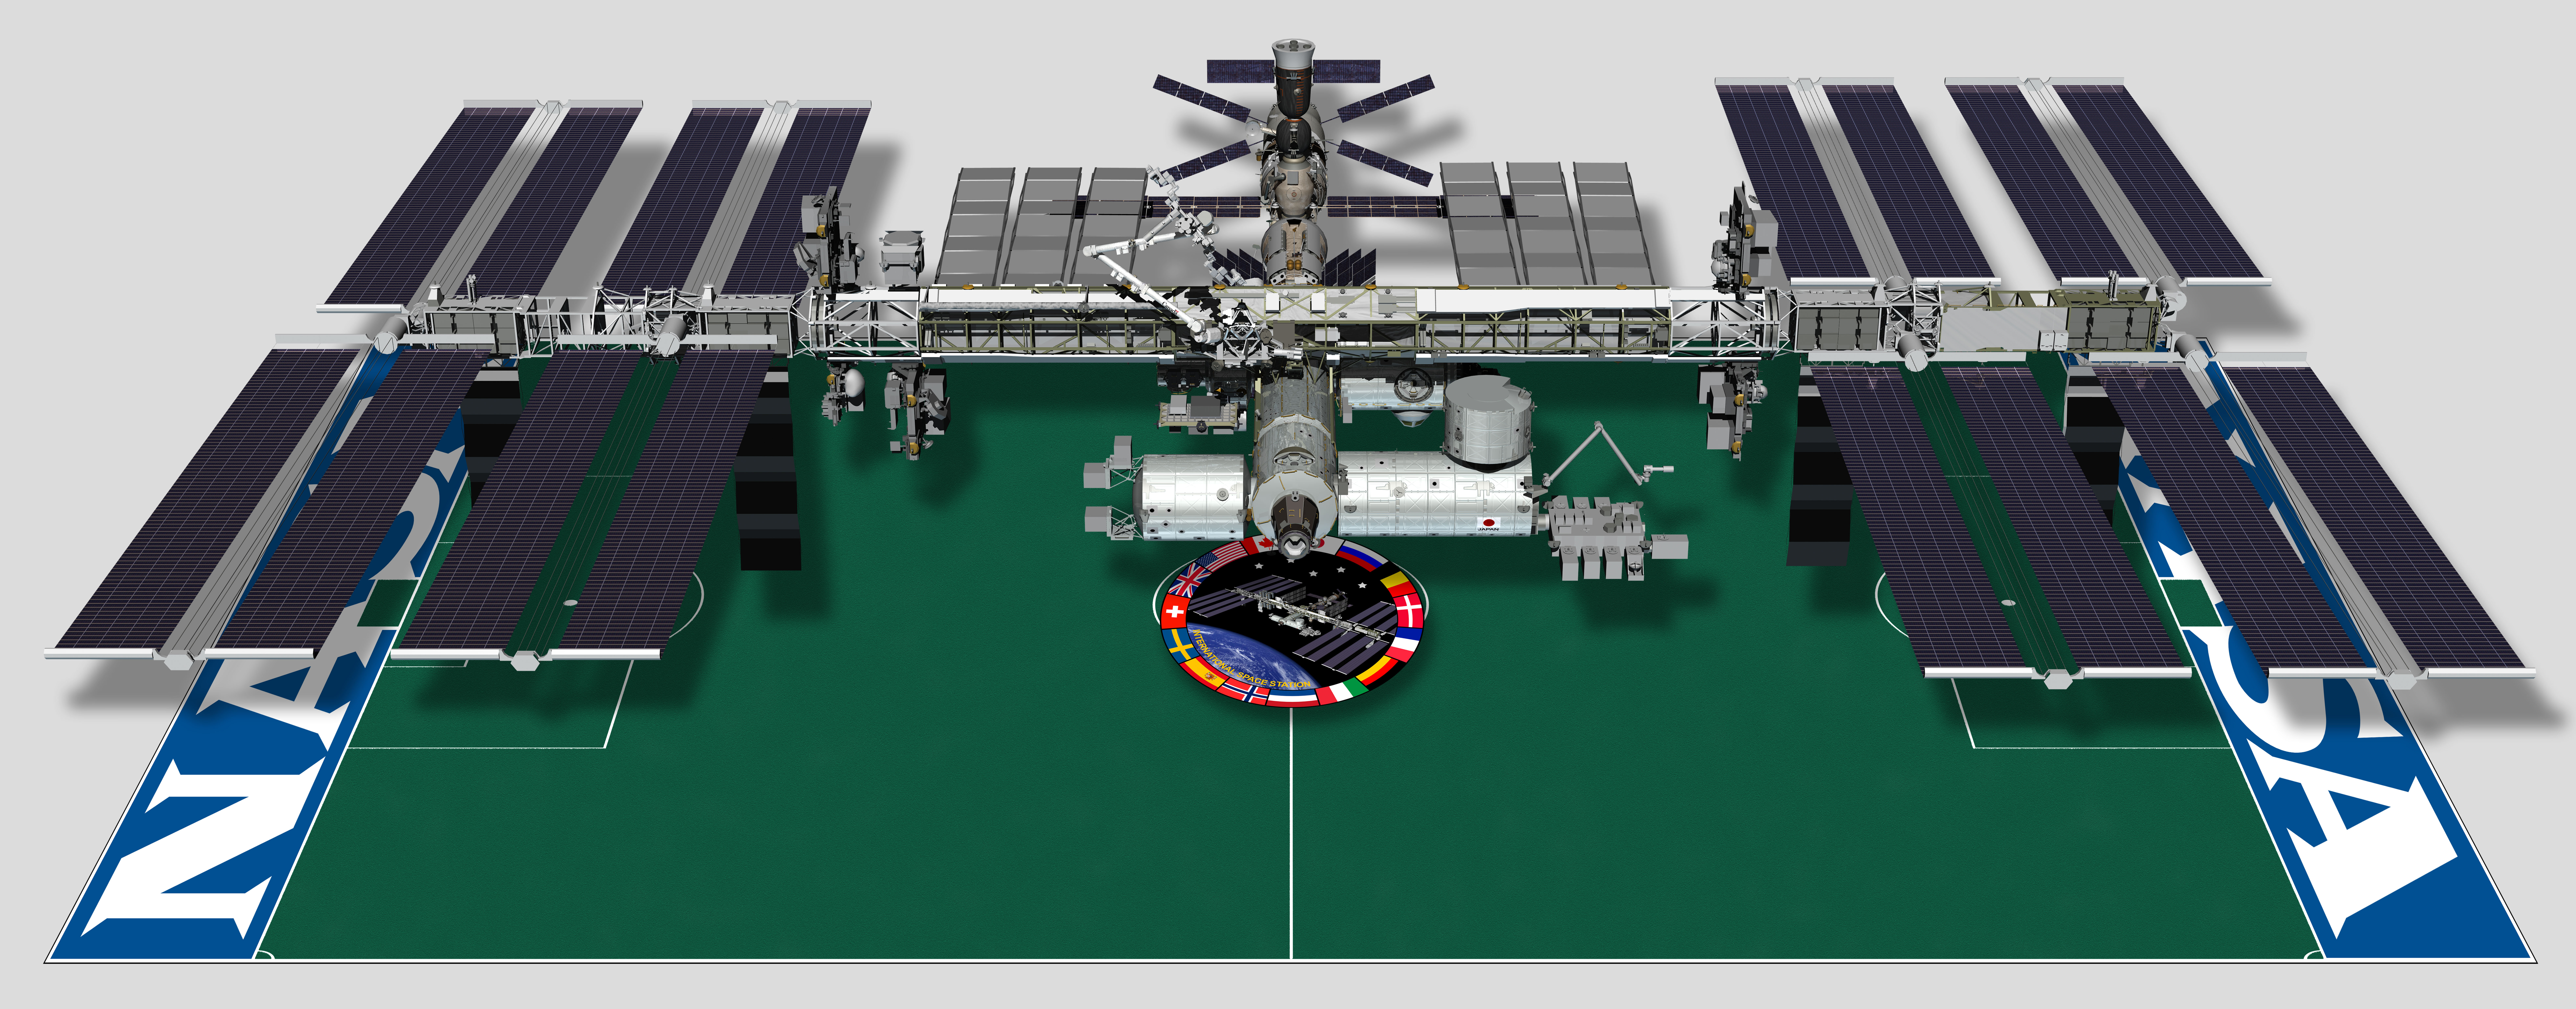 Space Station Size Compared to Soccer Field | NASA